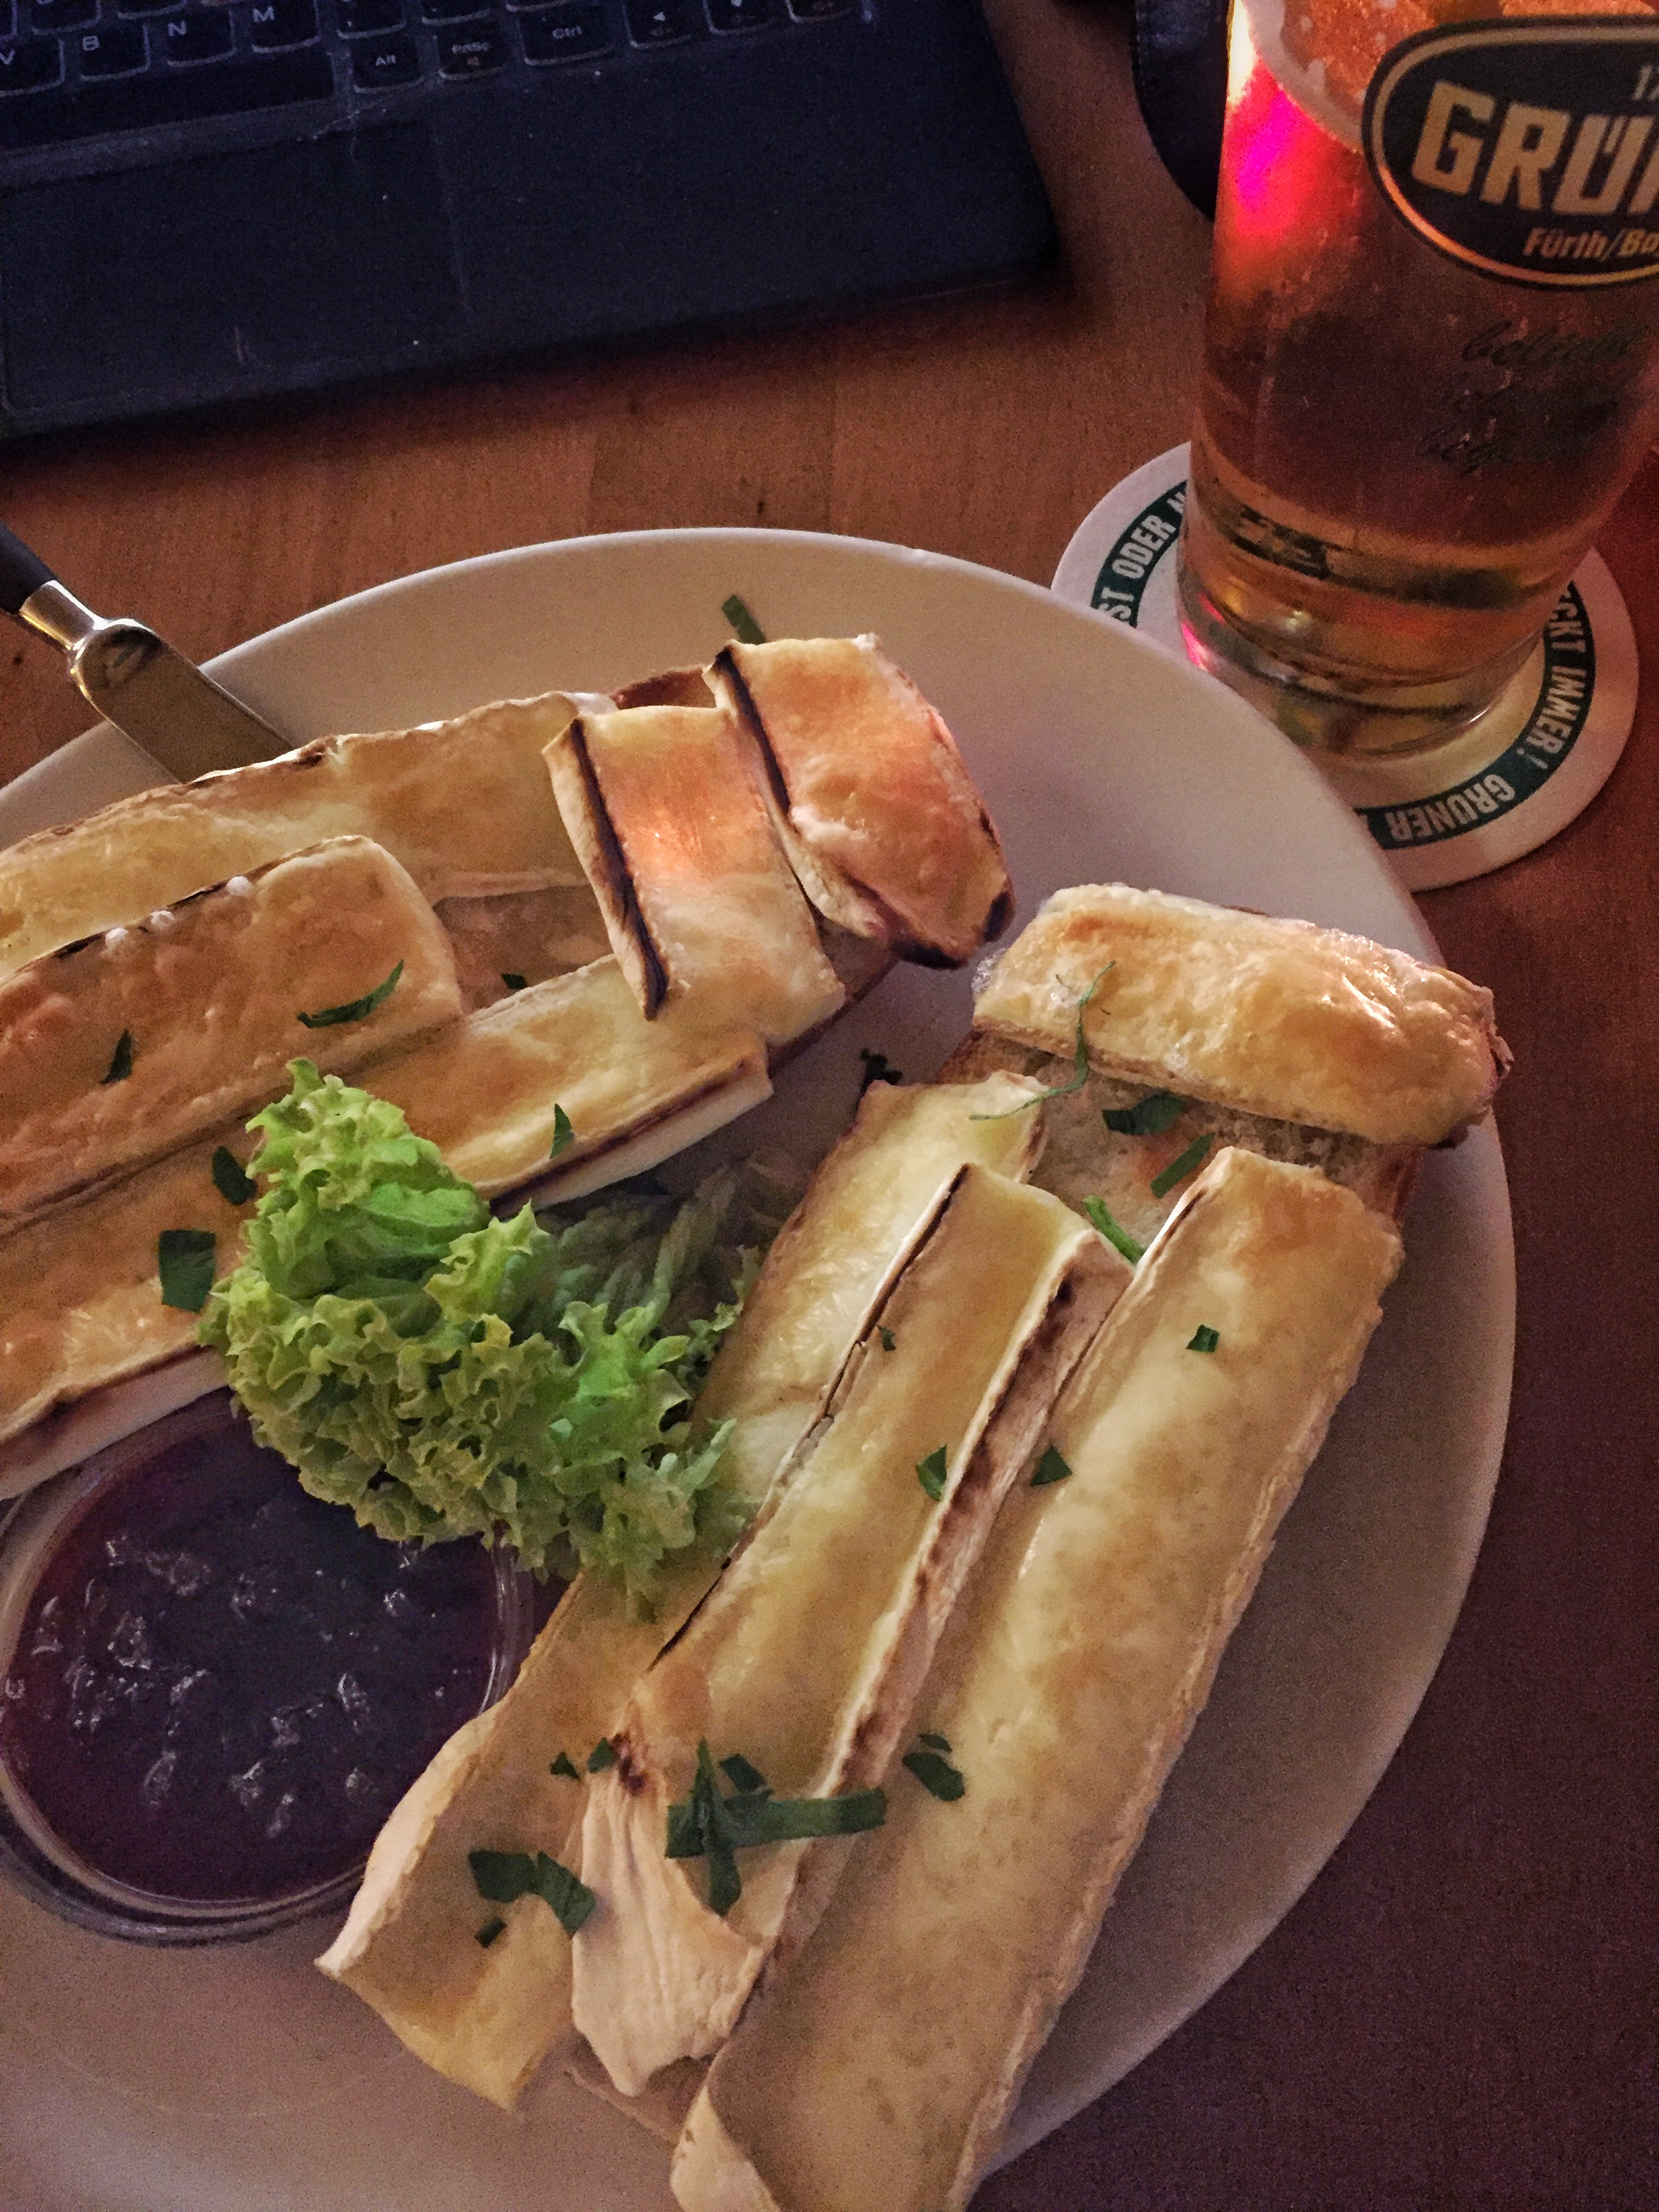 low-cal snack of brie, bread, and beer at Café Fatal (Nuremberg)